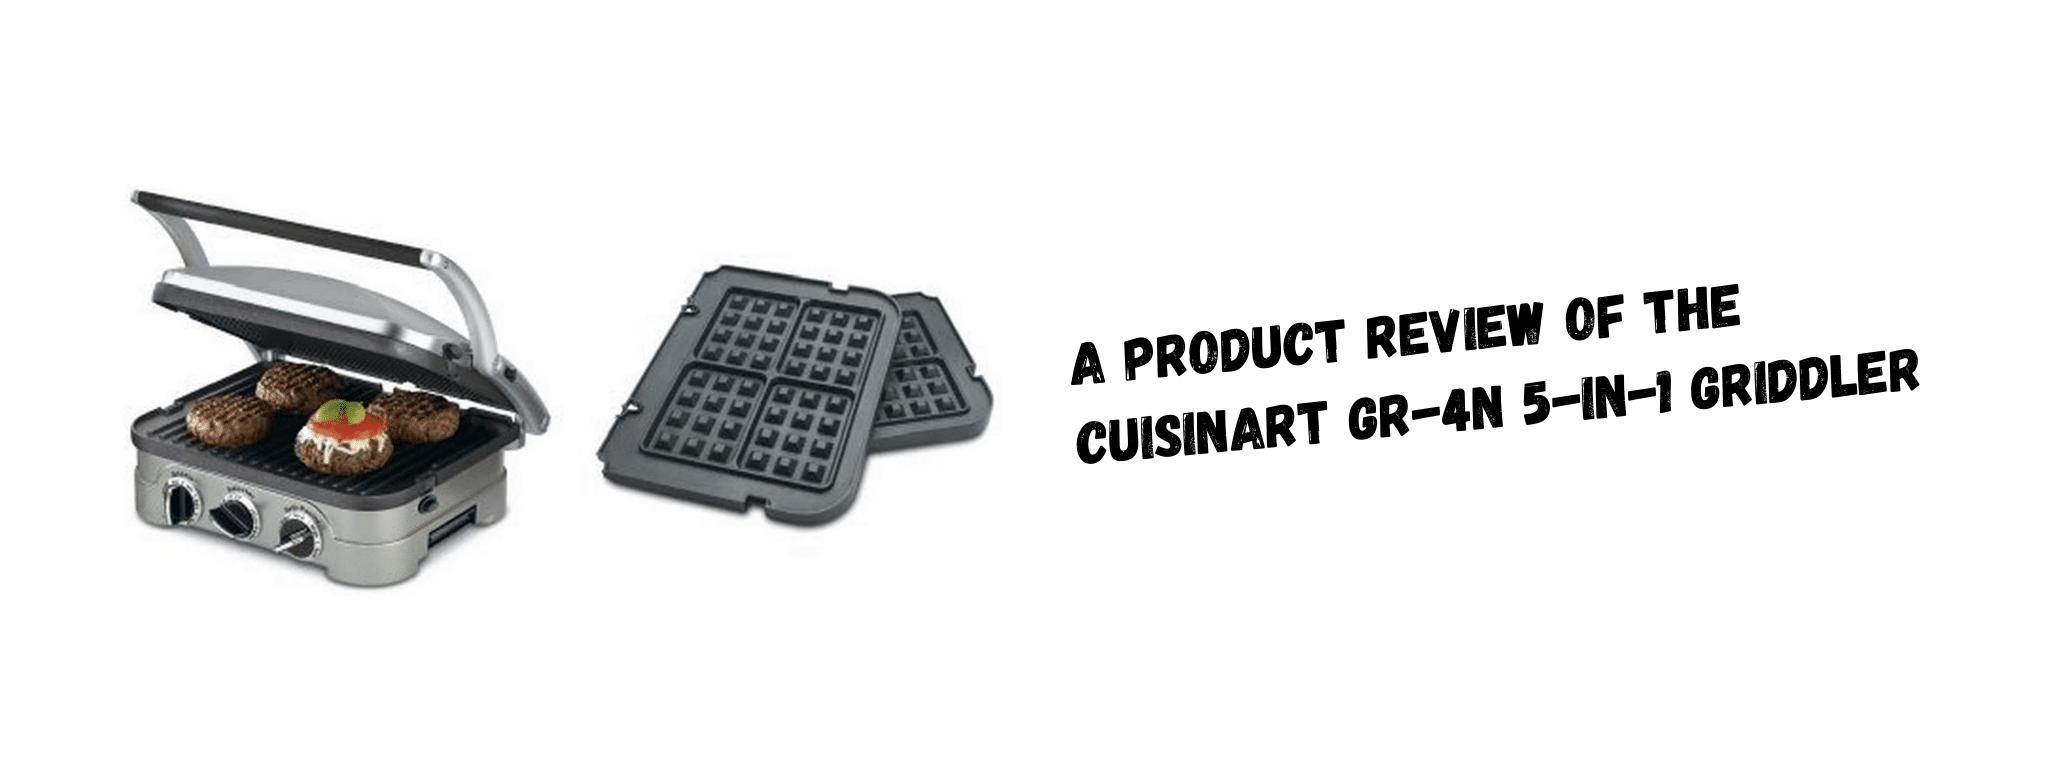 A Product Review Of Thе Cuisinart GR-4N 5-In-1 Griddler